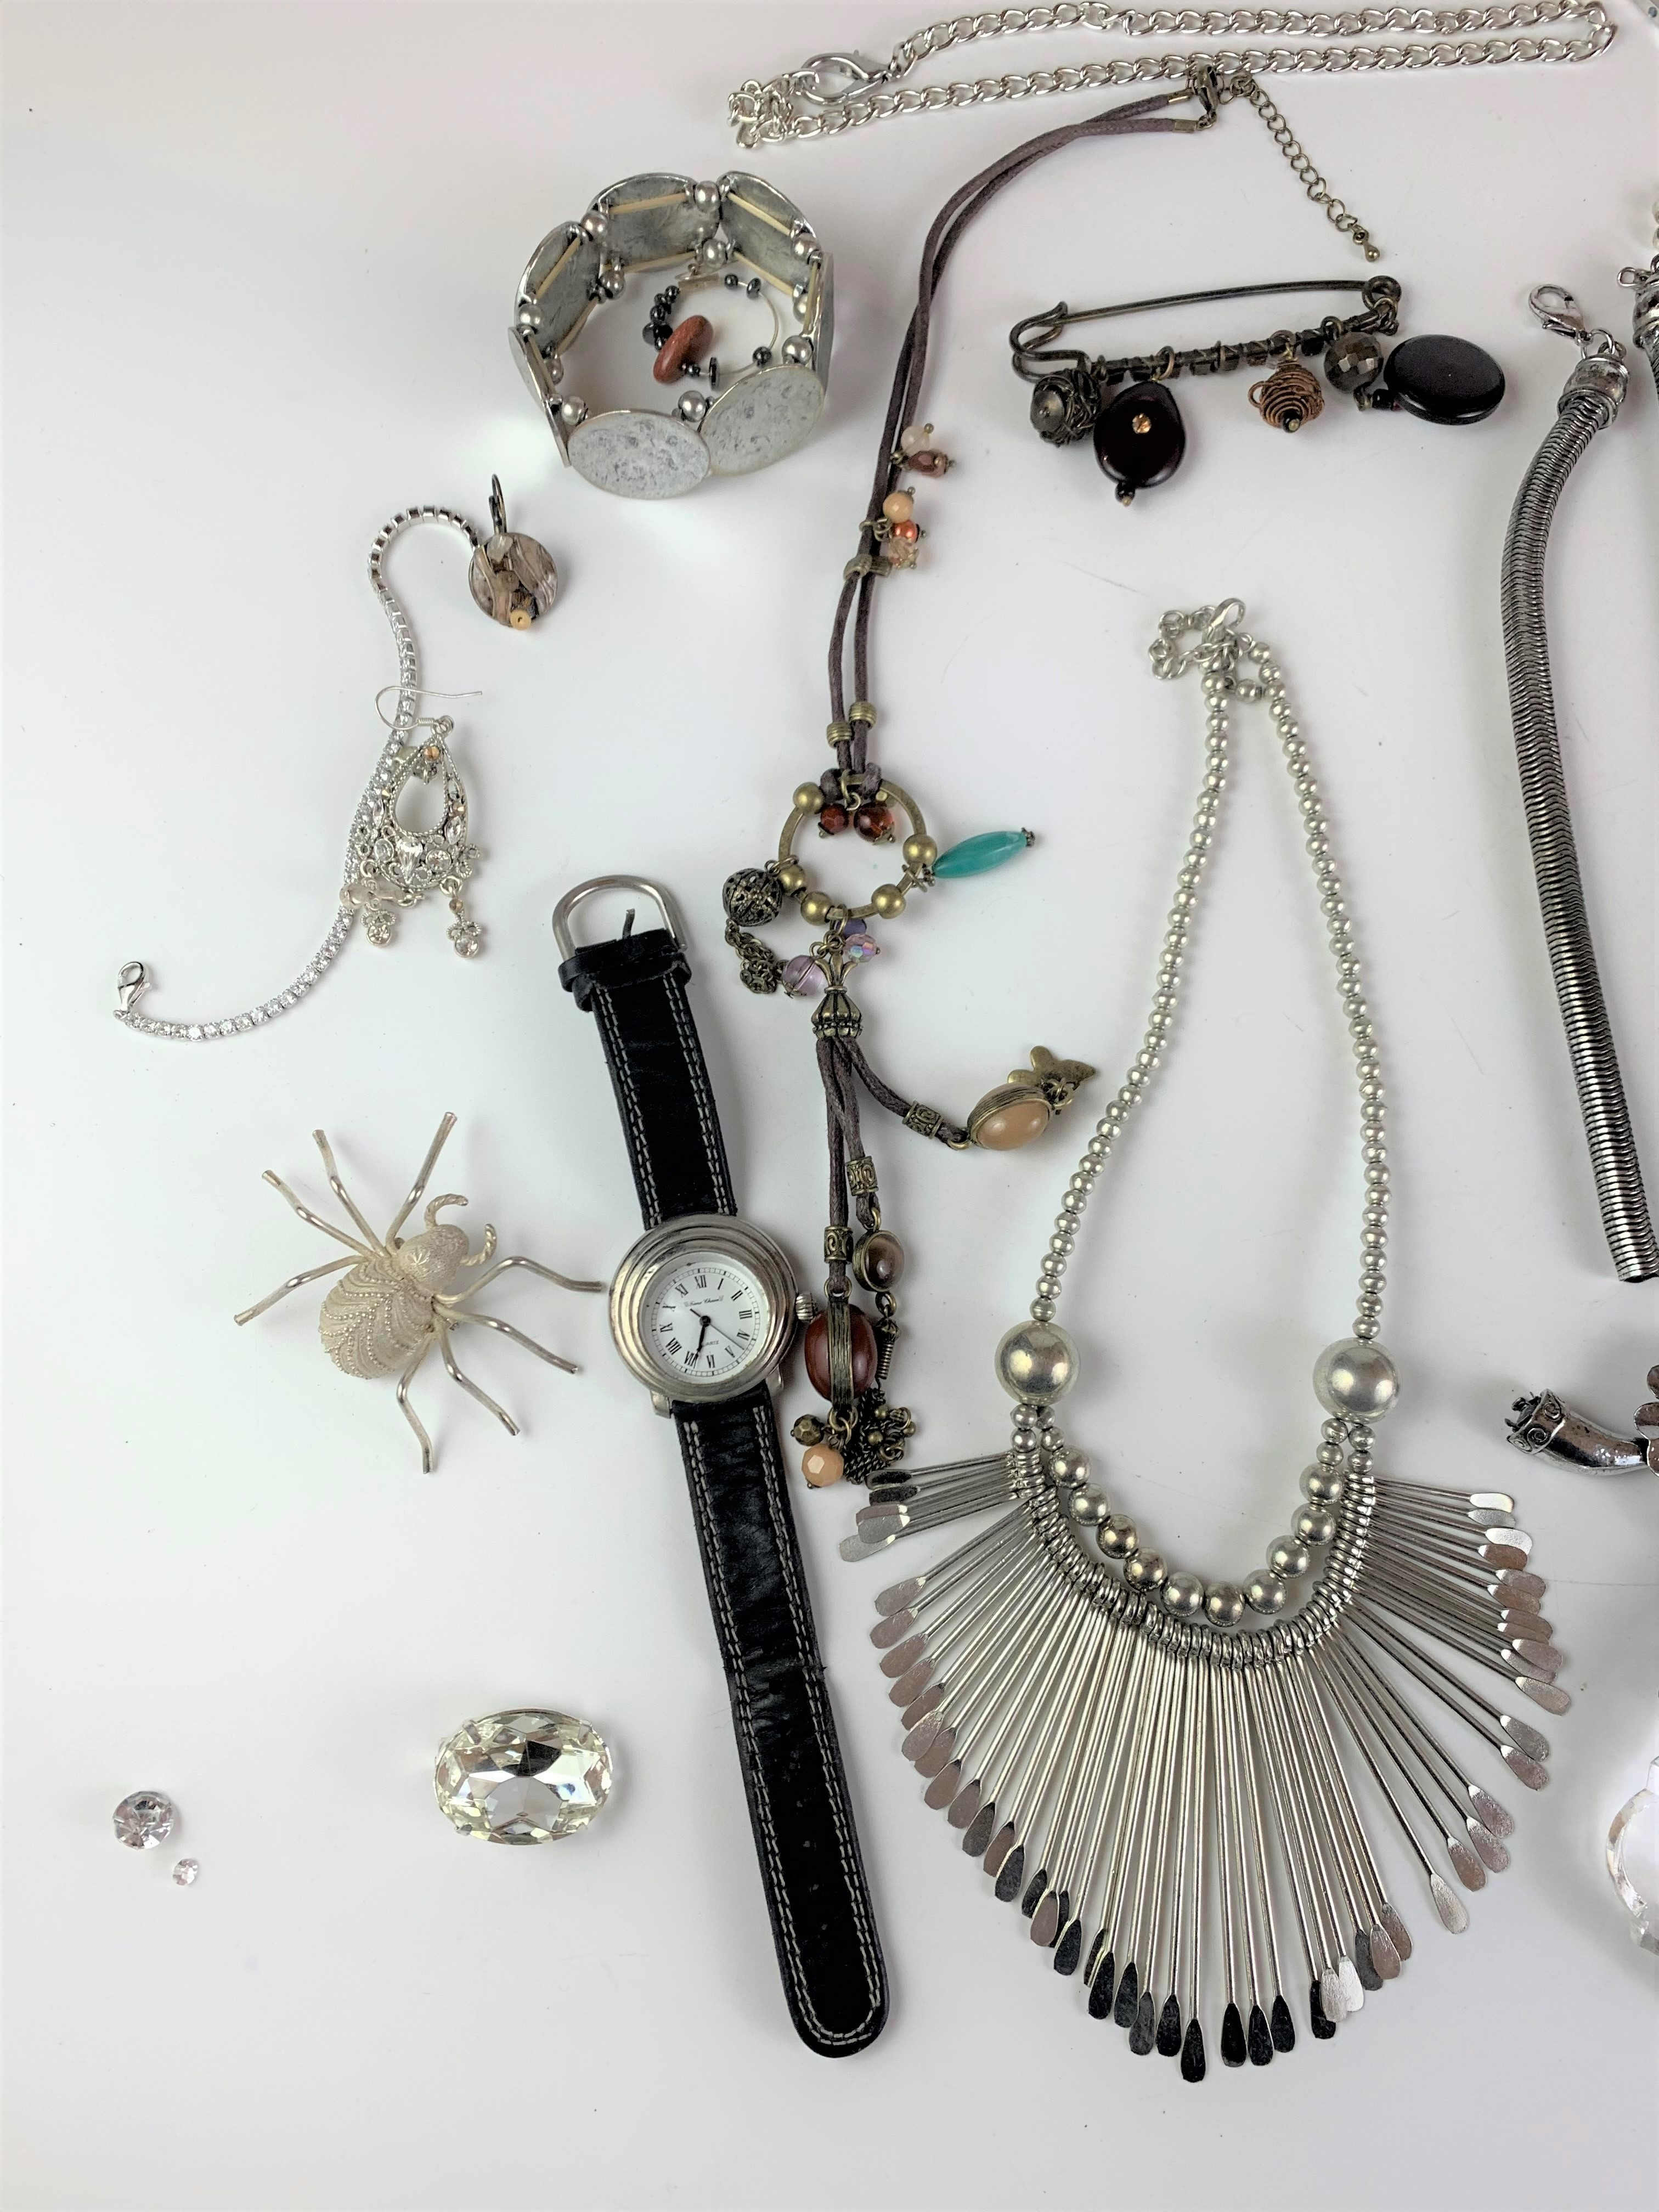 Large bag of assorted dress jewellery including necklaces, bracelets, watch, brooches etc. - Image 3 of 7